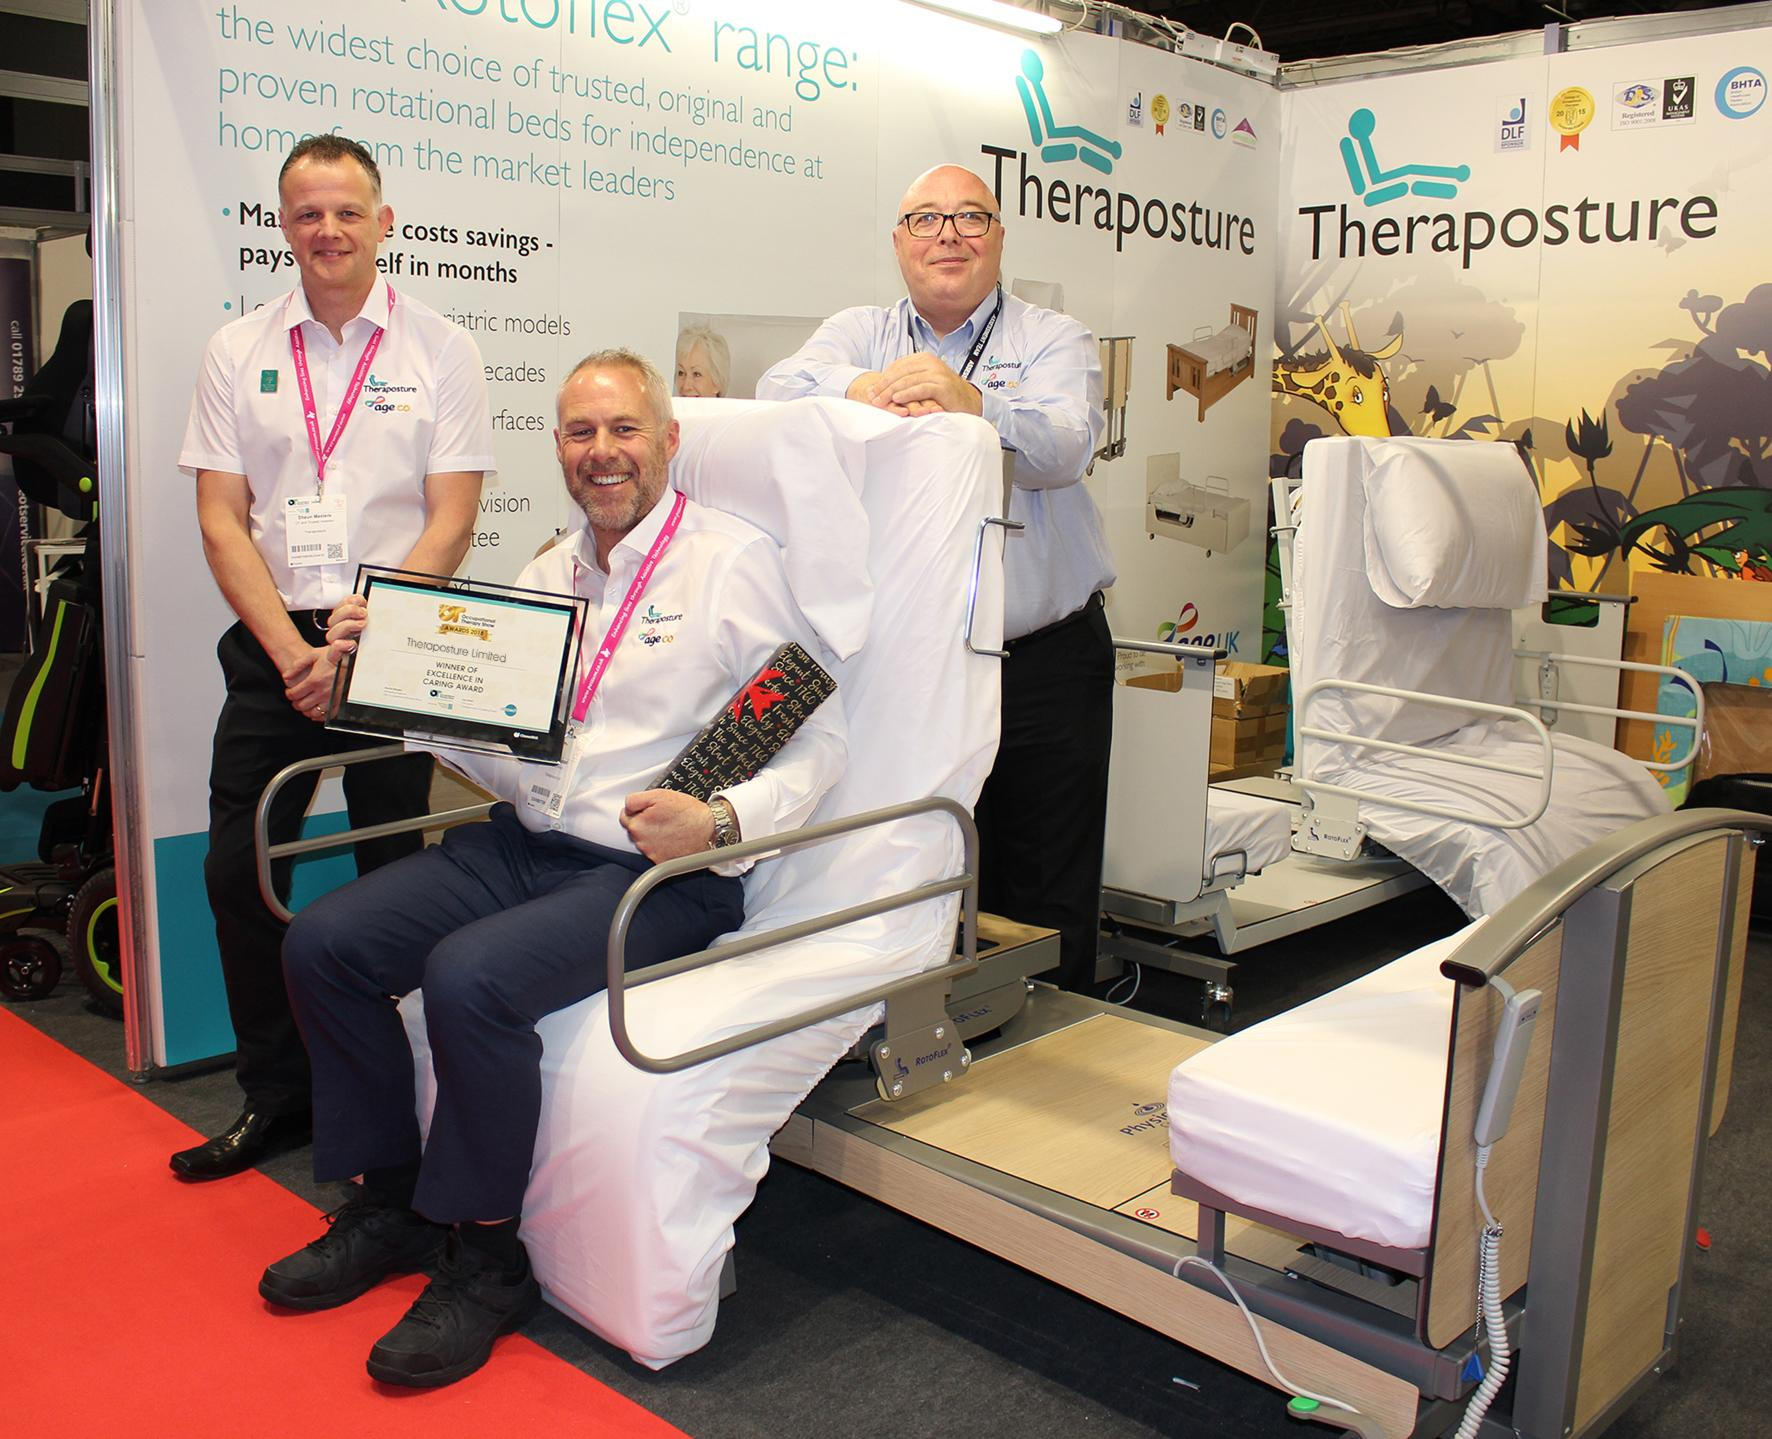 Award-winning Theraposture returns to OT Show with latest Rotoflex and adjustable bed innovations